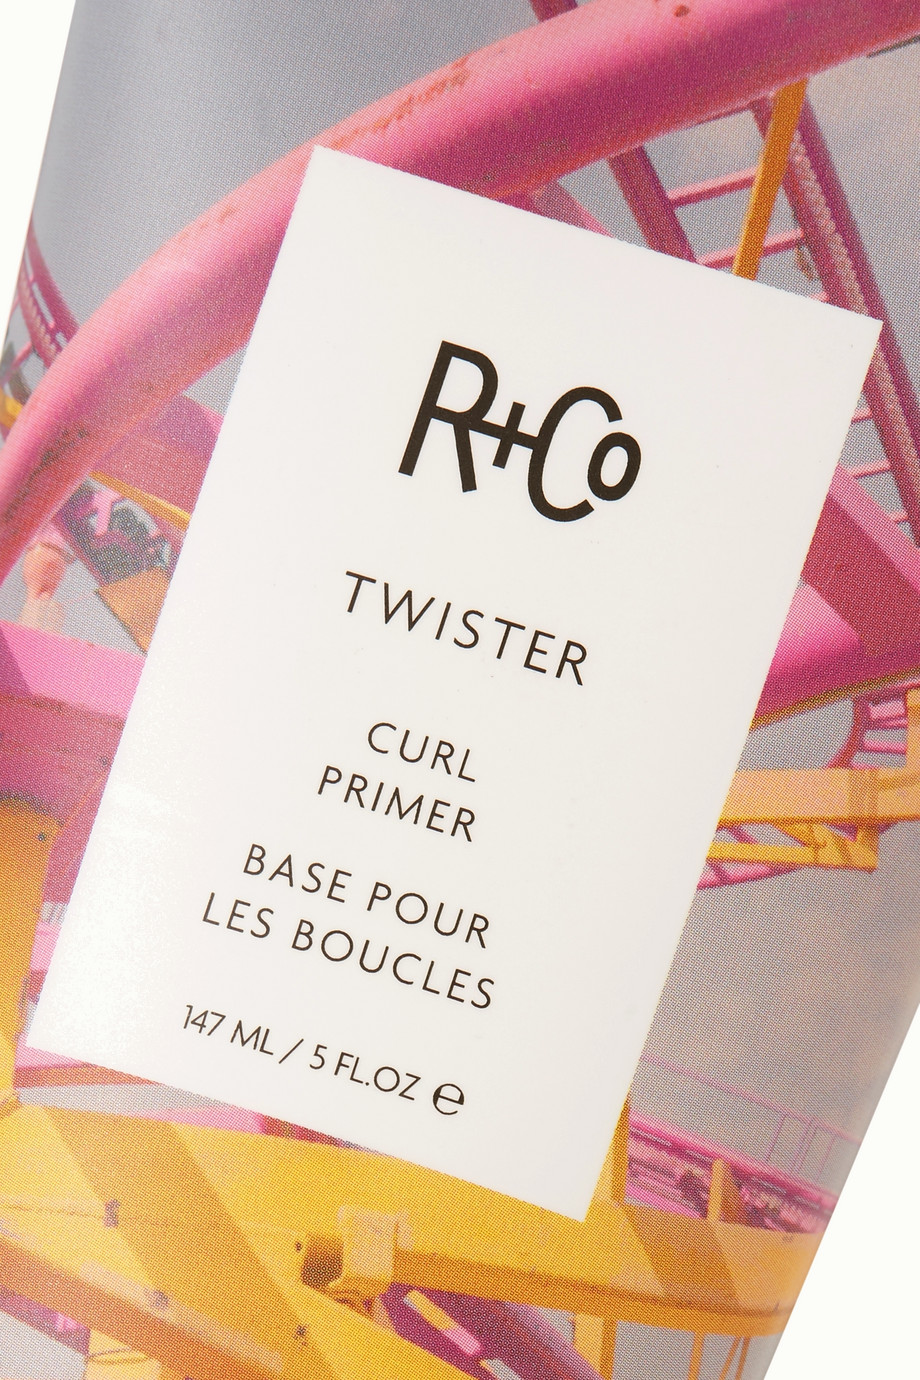 R+CO Twister Curl Primer, 147ml